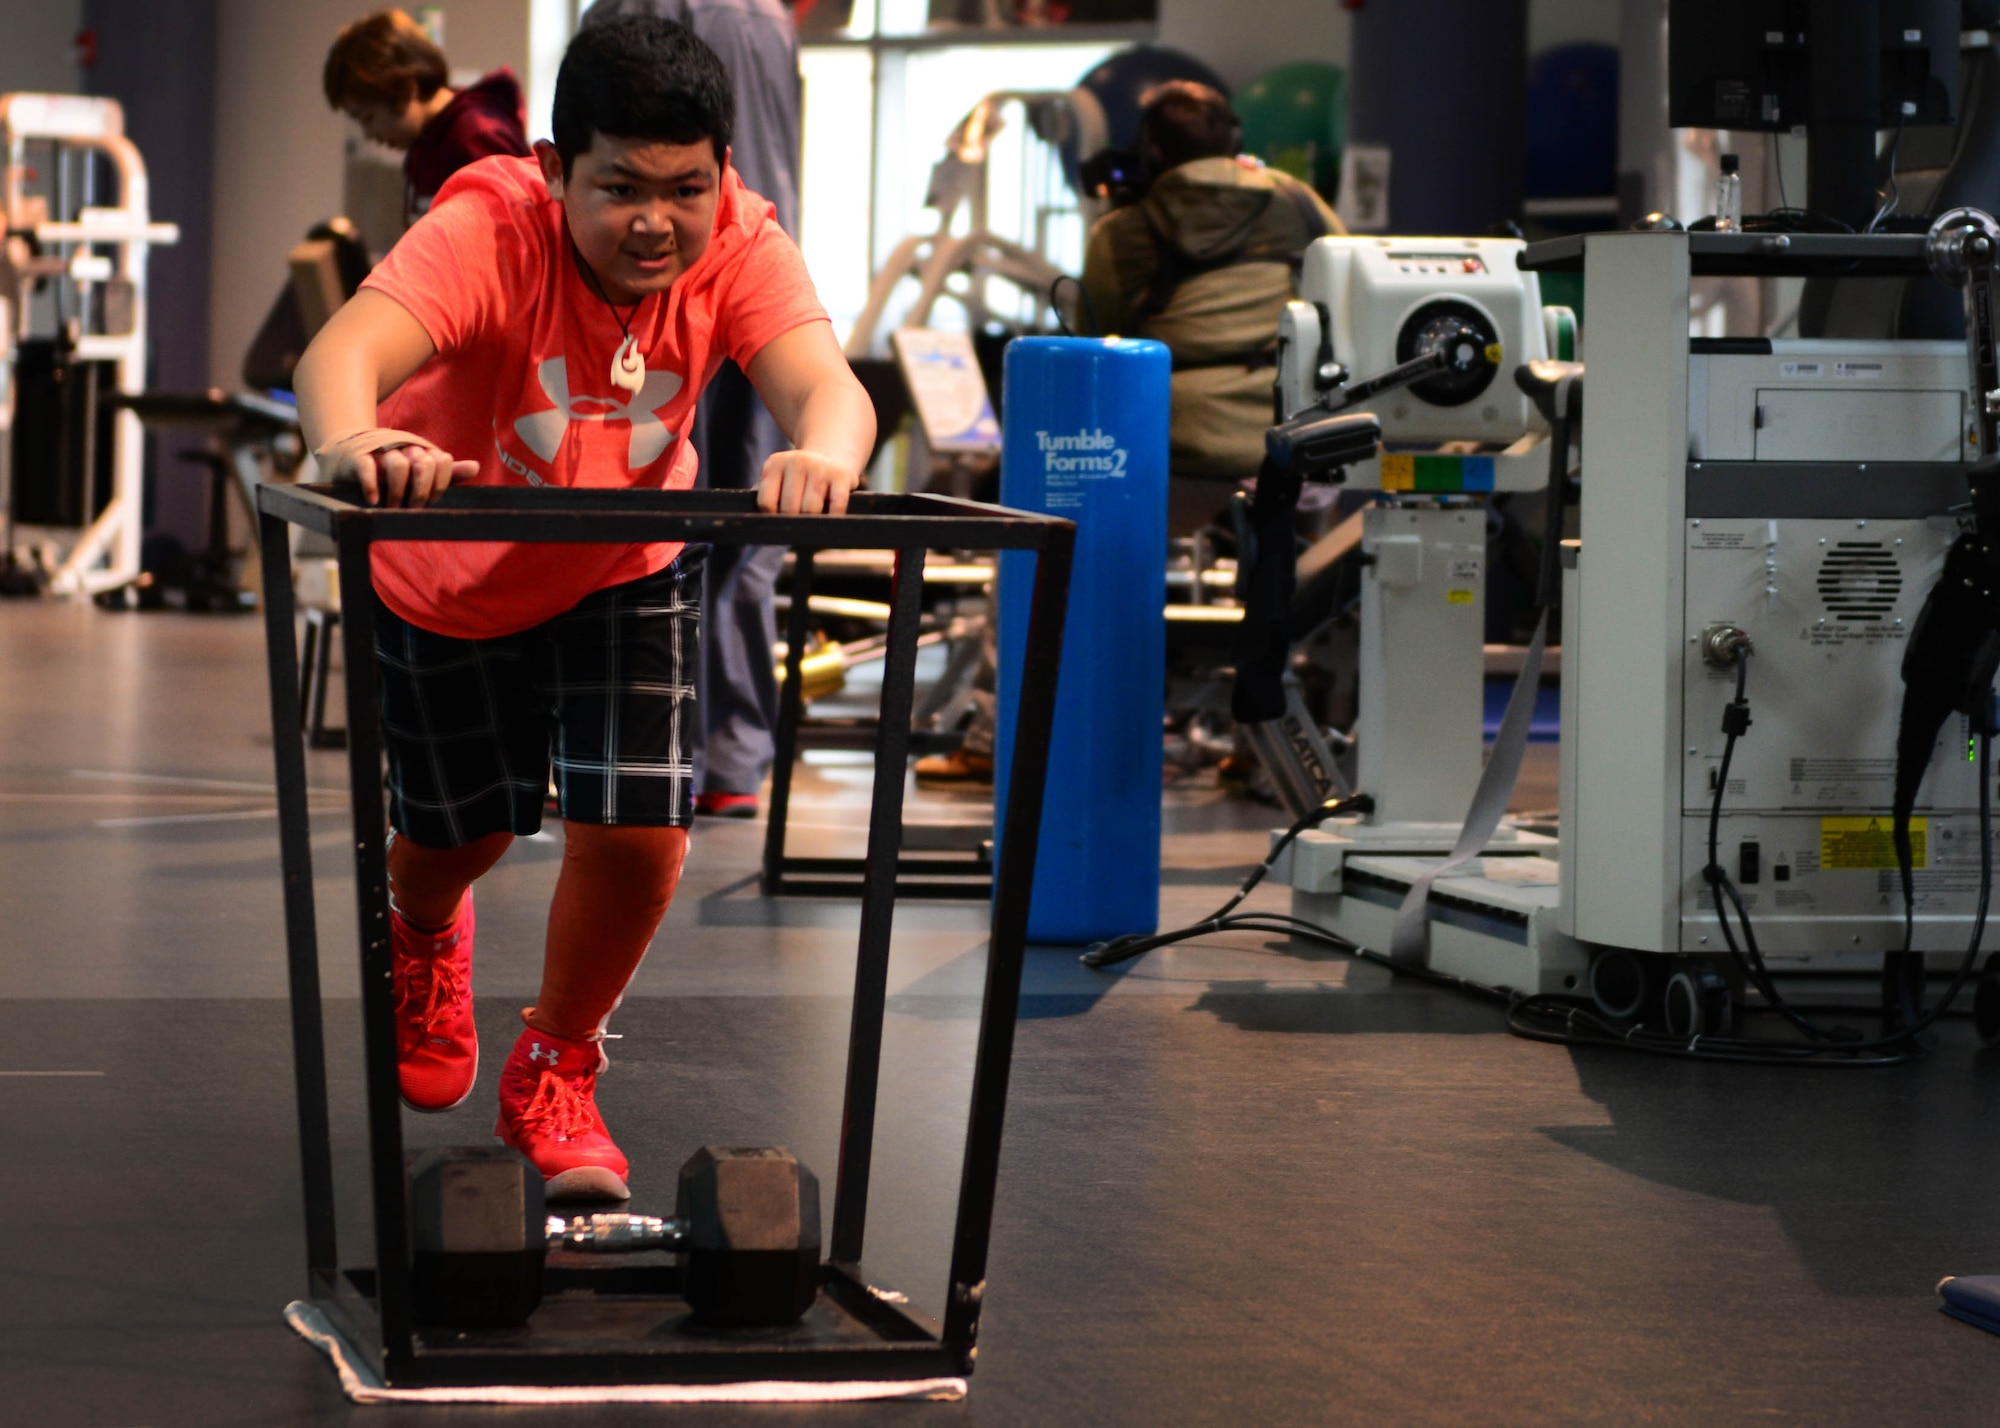 Kimo Martinez pushes a weighted sled during a rehabilitation session at the Center for Intrepid on Joint Base San Antonio-Fort Sam Houston, Texas, Dec. 7, 2016. During the Brussels Airport bombing March 22, 2016, that tragically killed his mother, Kimo and his family sustained multiple injuries that have led to extensive rehabilitative procedures. (U.S. Air Force photo by Senior Airman Chip Pons)